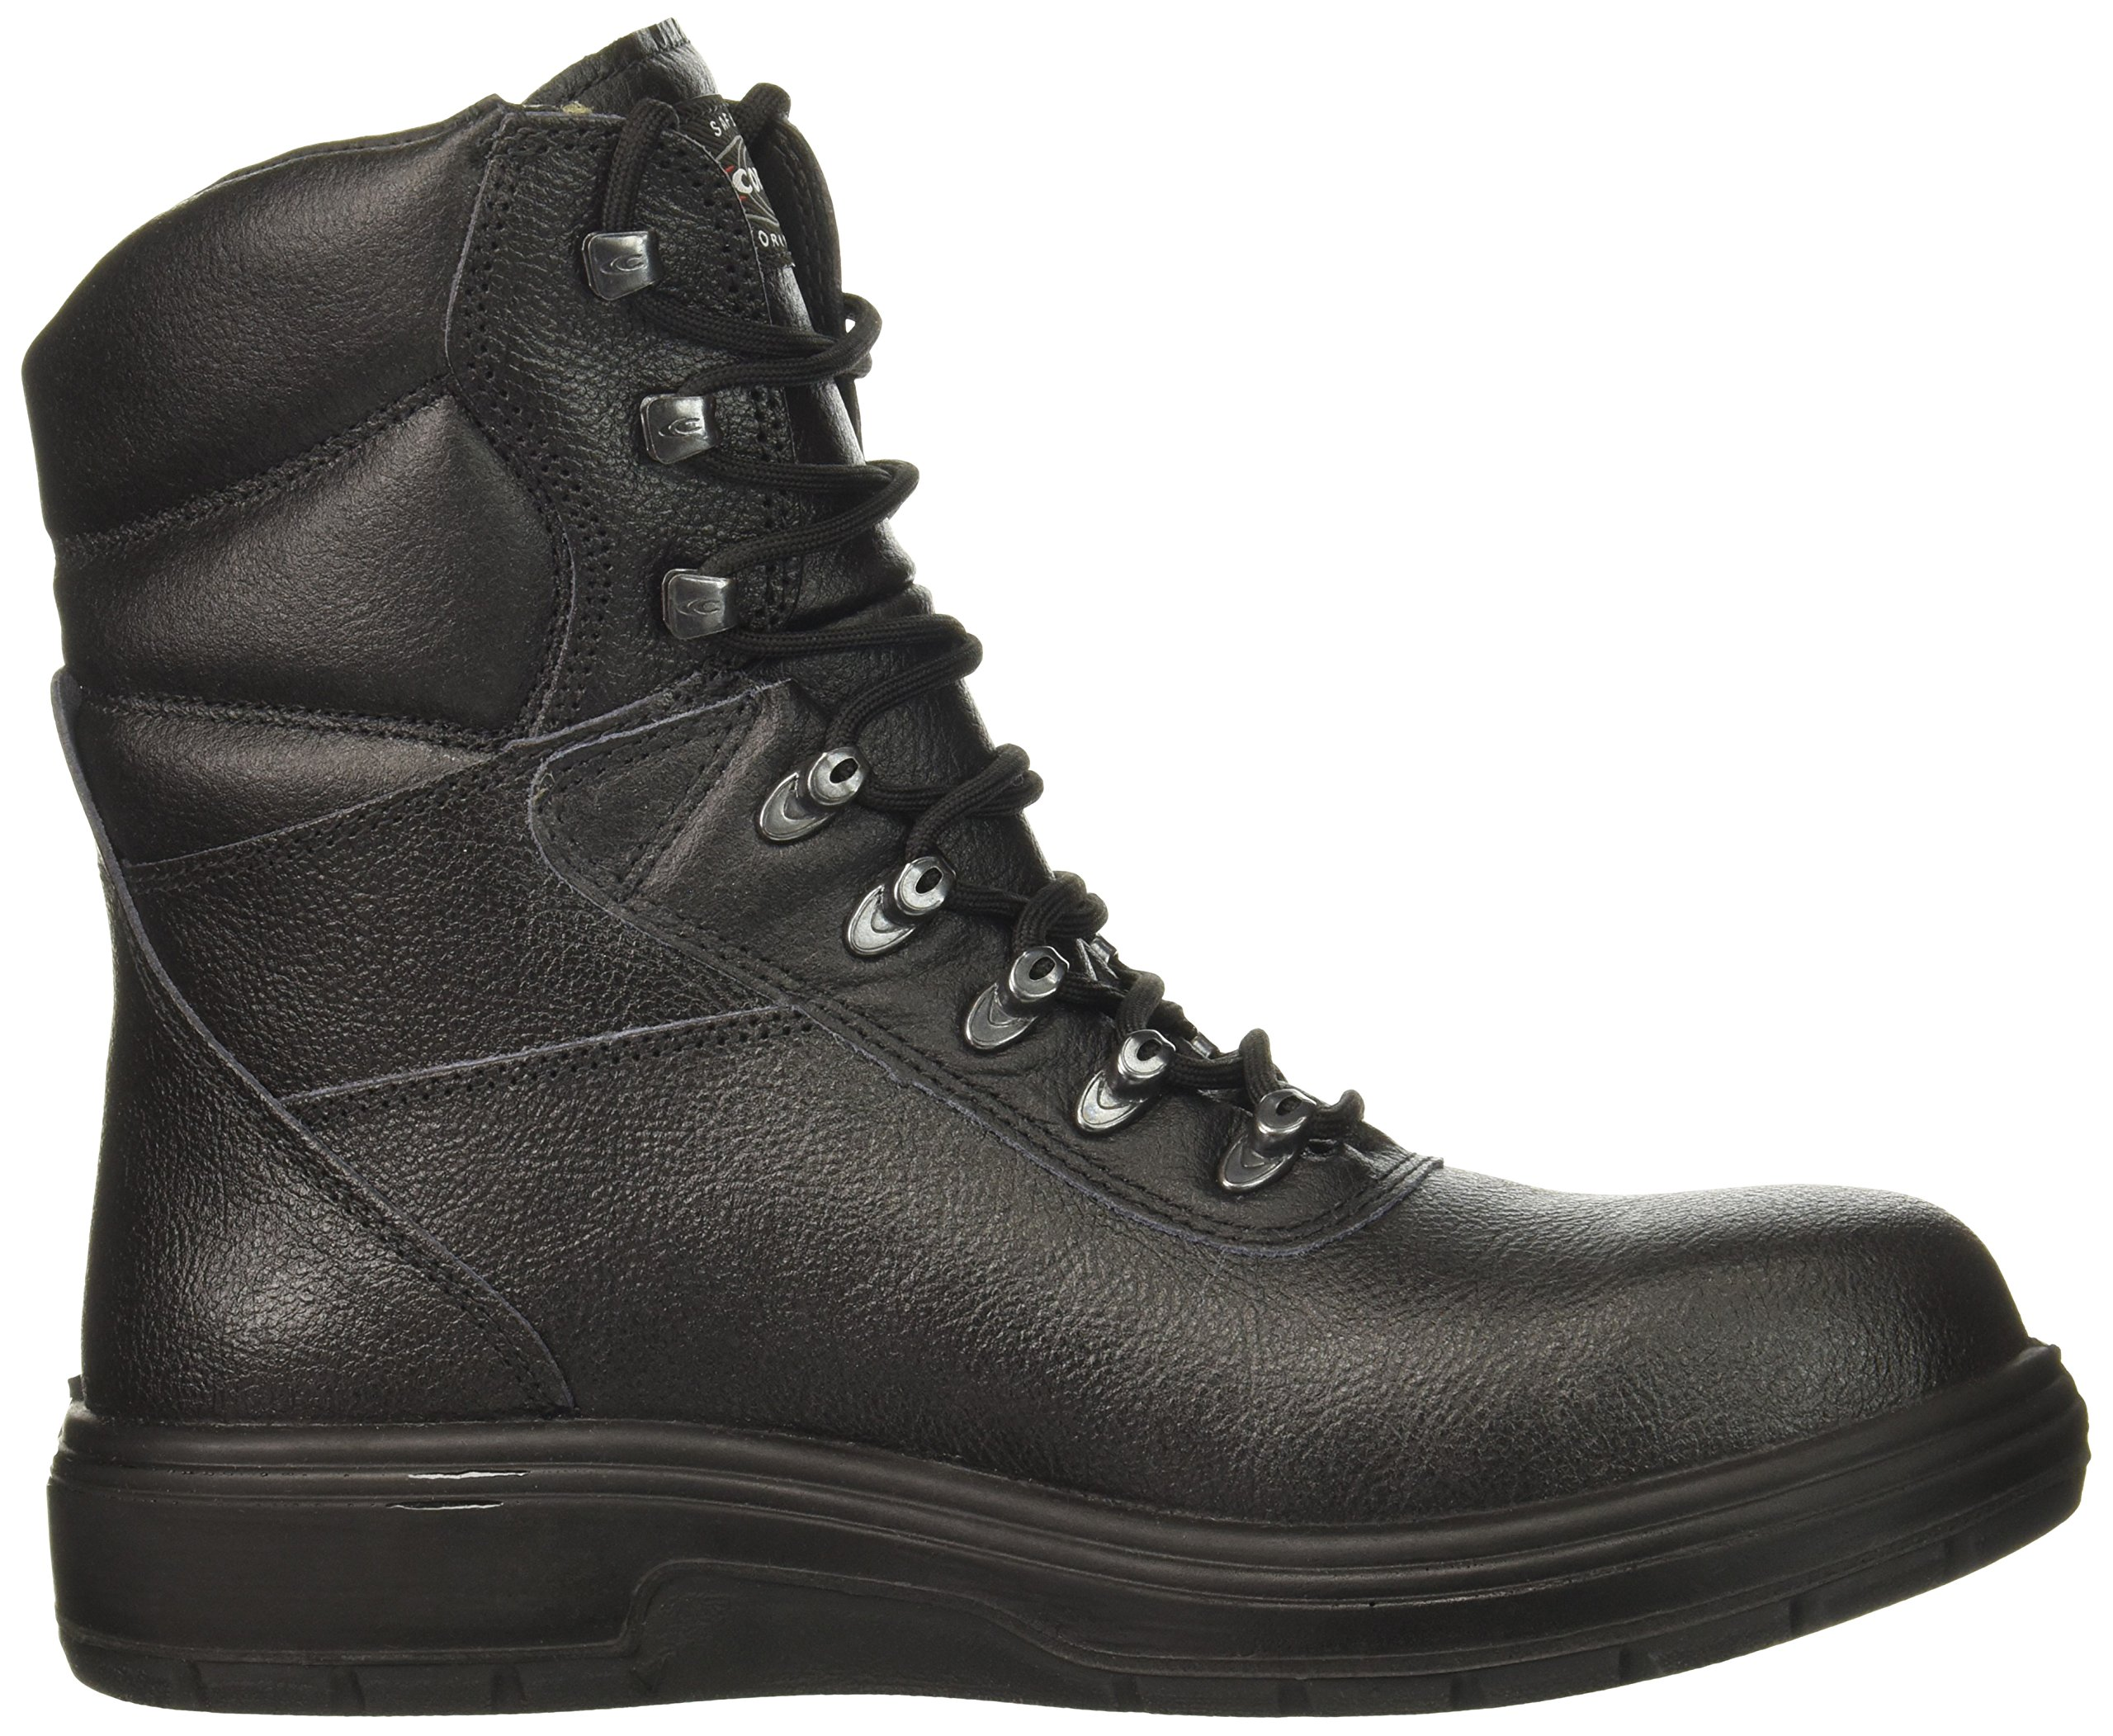 Cofra 82120-CU1.W11 Us Road EH PR Safety Boots, 11, Black by Cofra (Image #7)